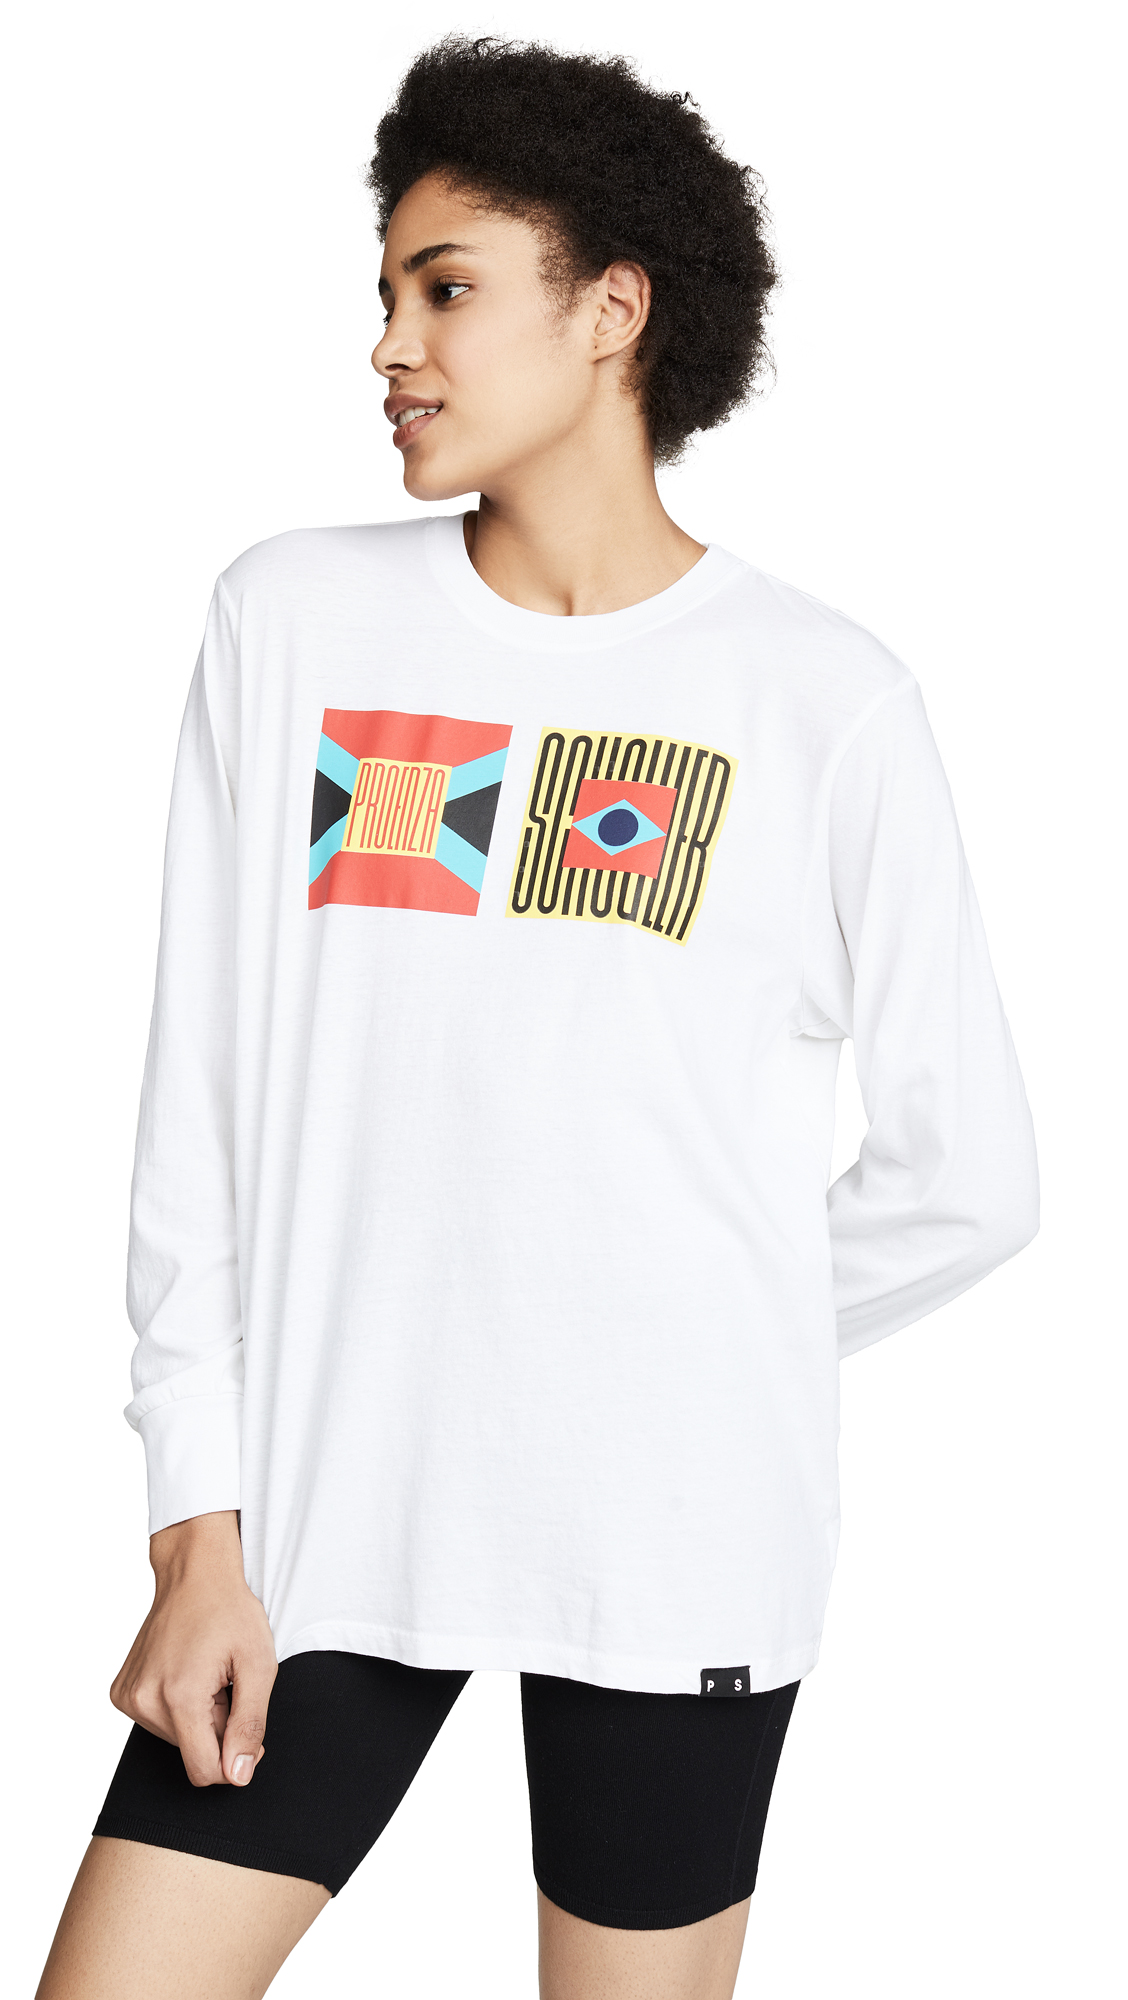 Proenza Schouler PSWL Flag Long Sleeve Tee - Yellow/Red Multi Flag